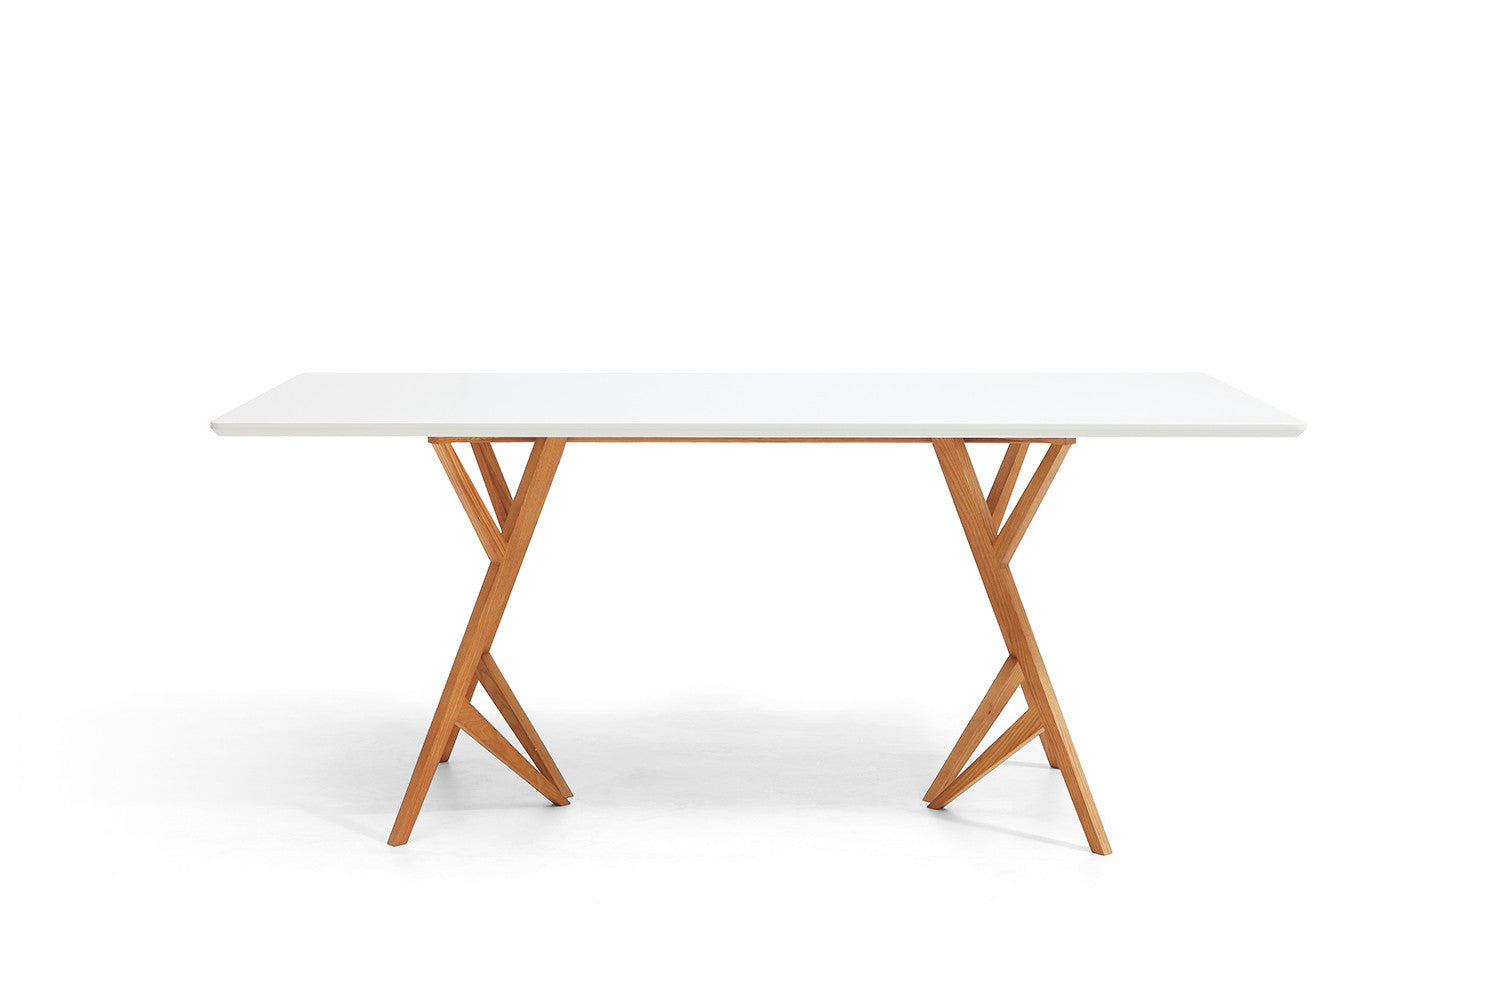 Table de salle manger design scandinave vispa dewarens for Table en bois salle a manger